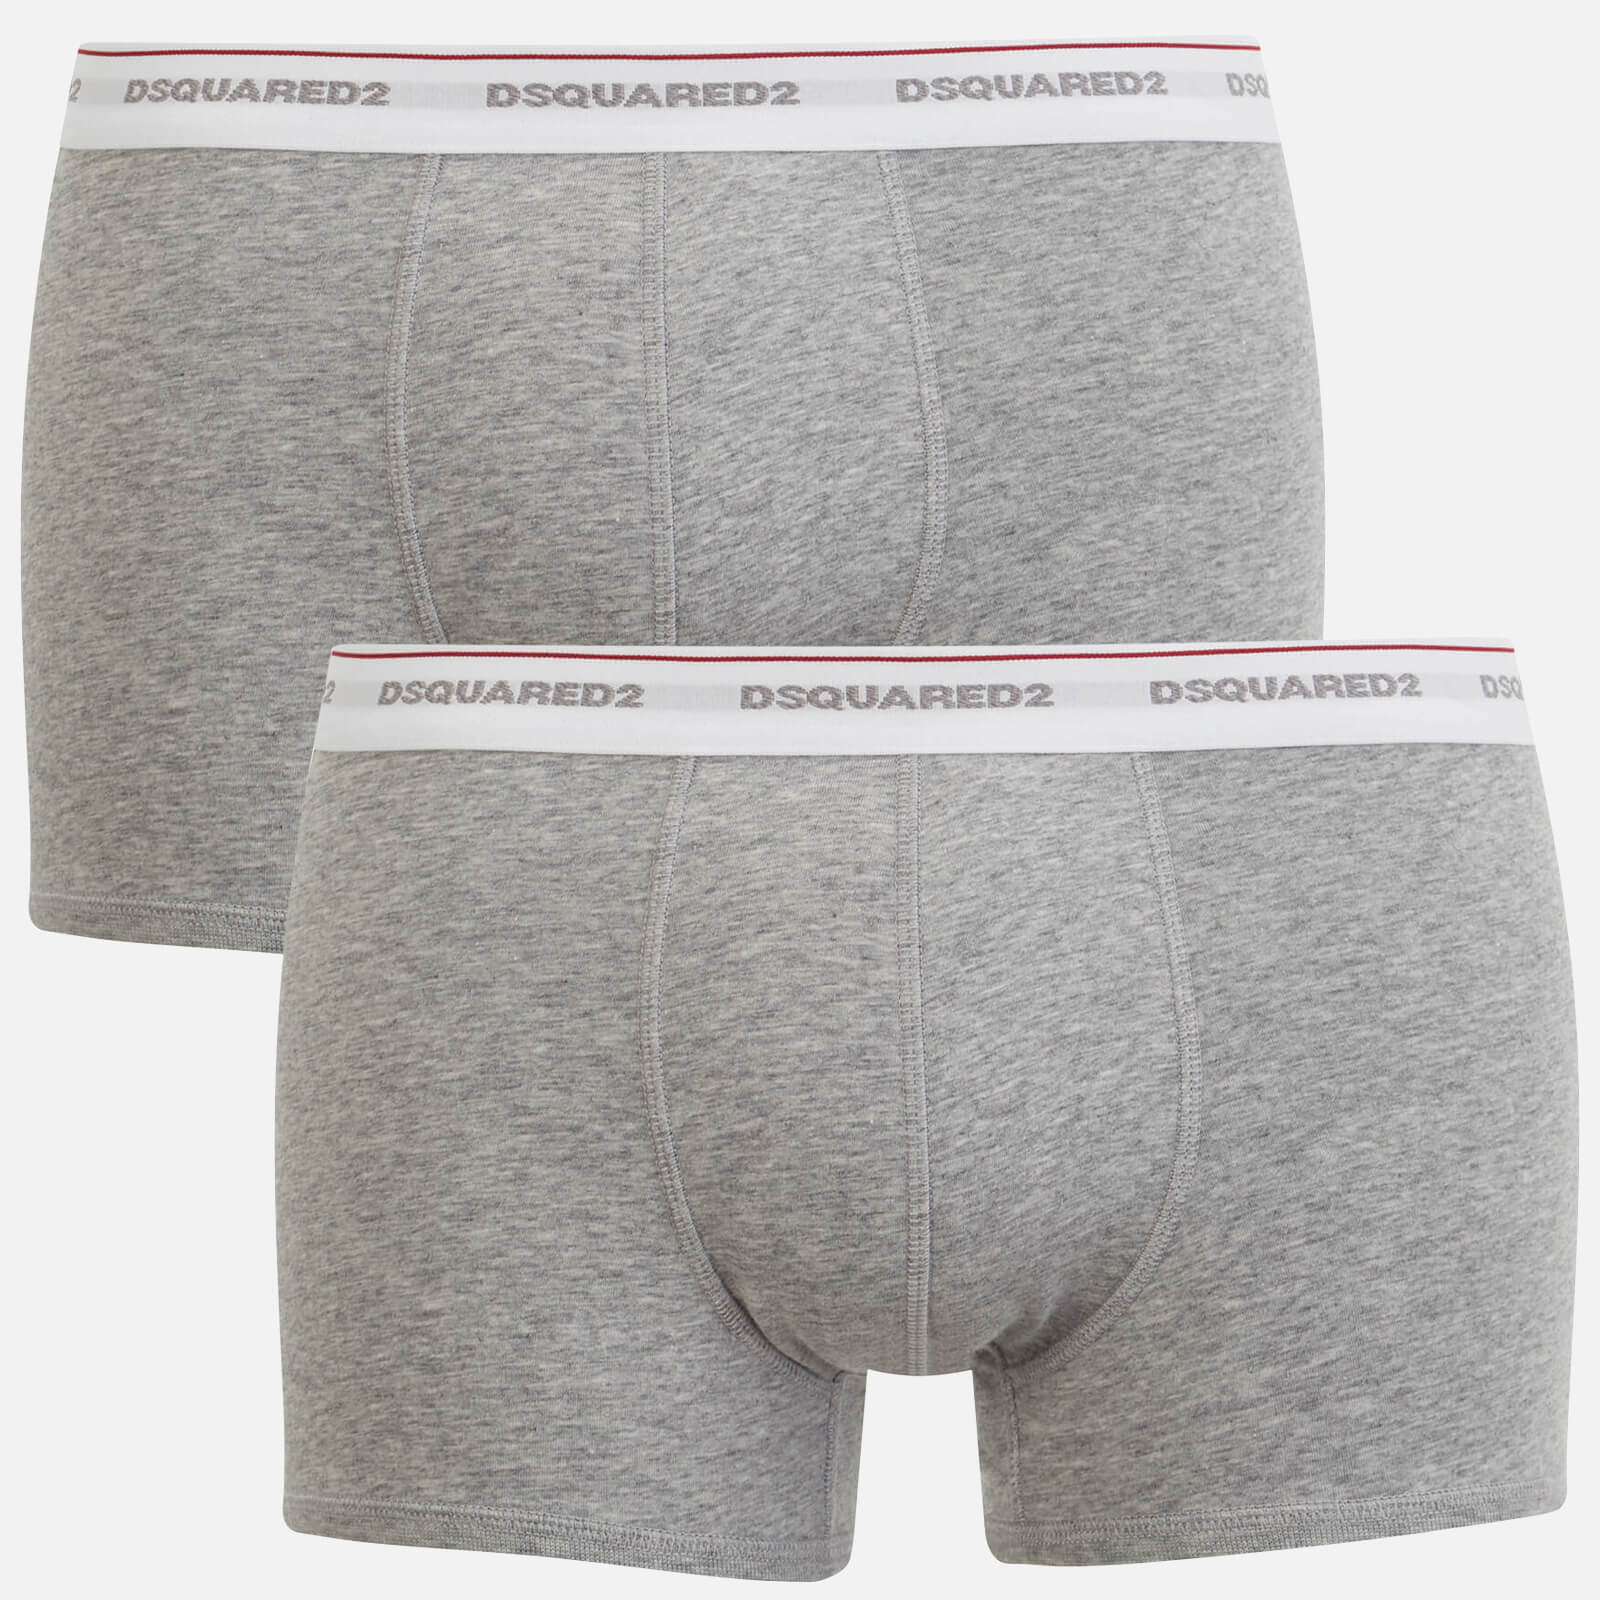 DSquared2 3-Pack Jersey Cotton Stretch Men/'s Low-rise Briefs White